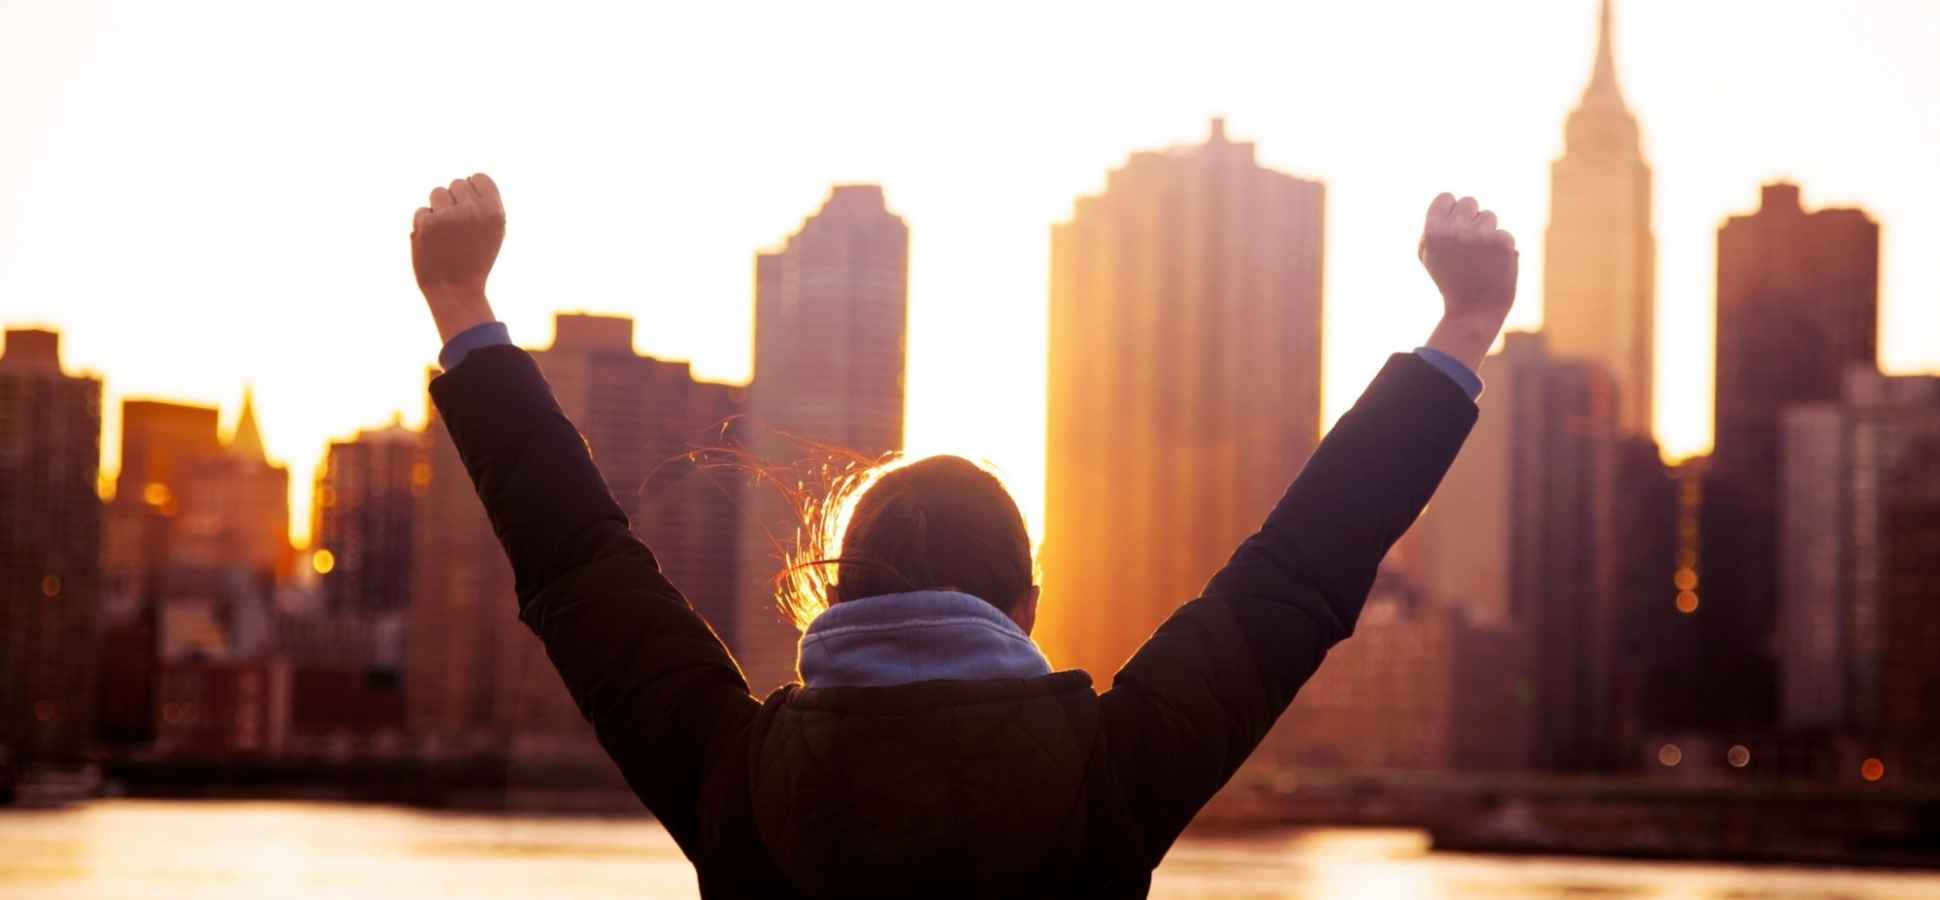 9 Ways to Become Incredibly Successful: the Ultimate Guide to Accomplishing All Your Goals